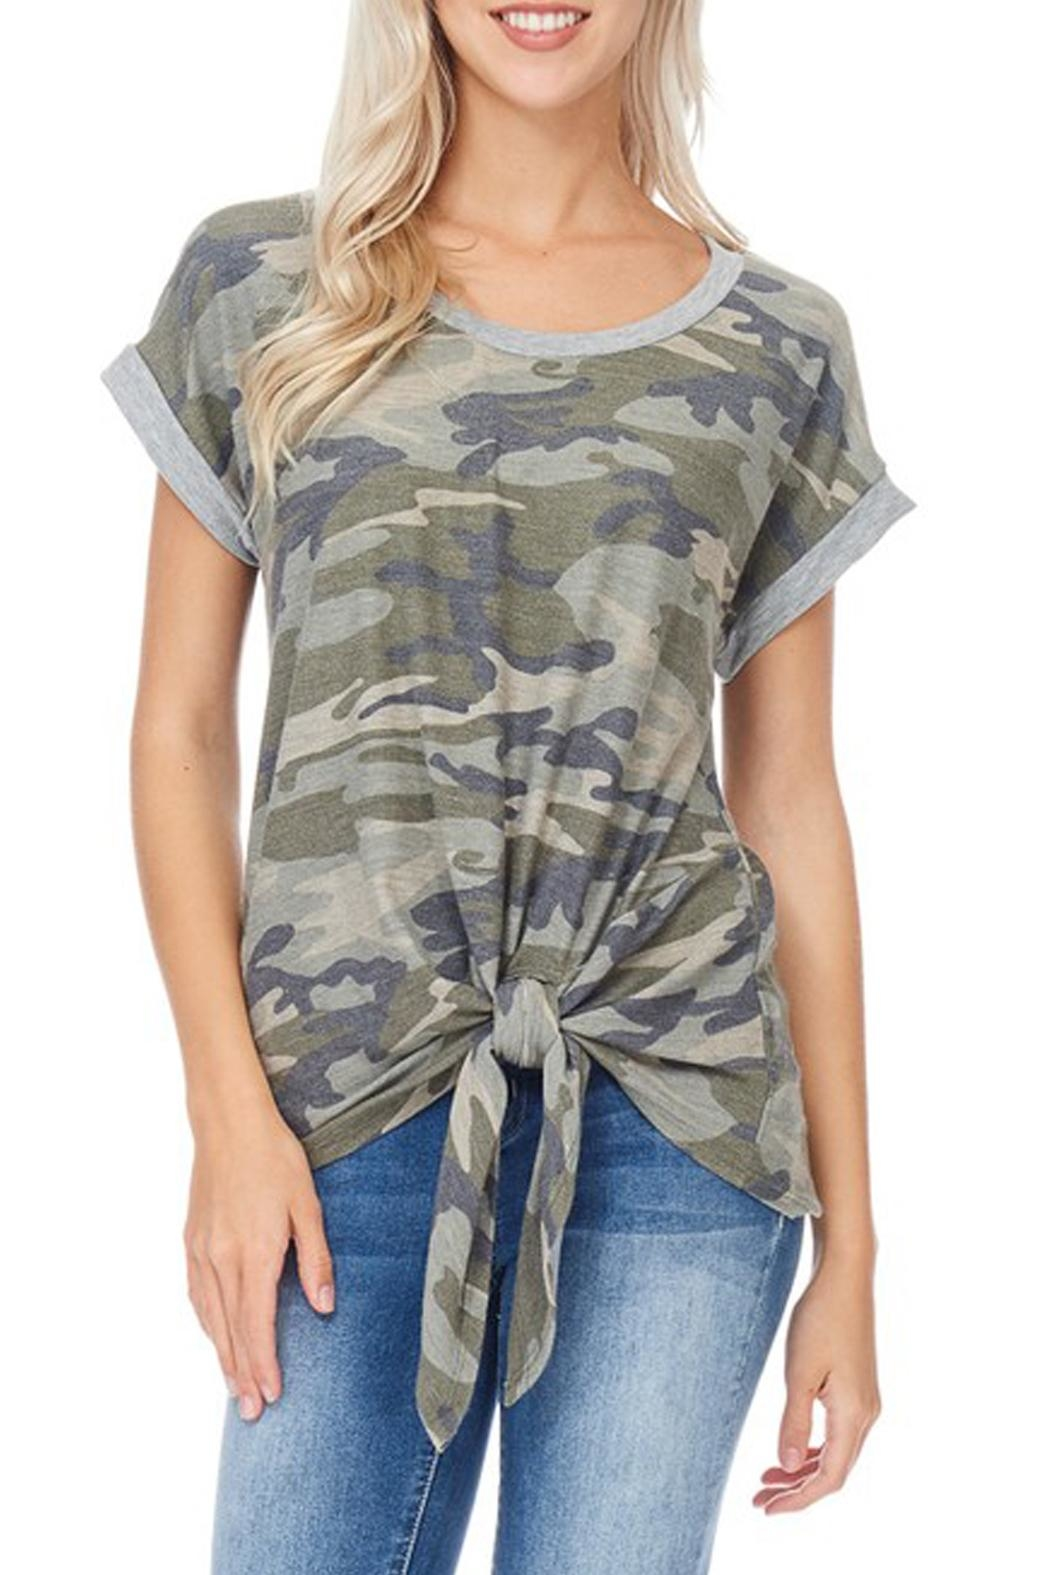 7th Ray Camo Tie Top - Front Cropped Image